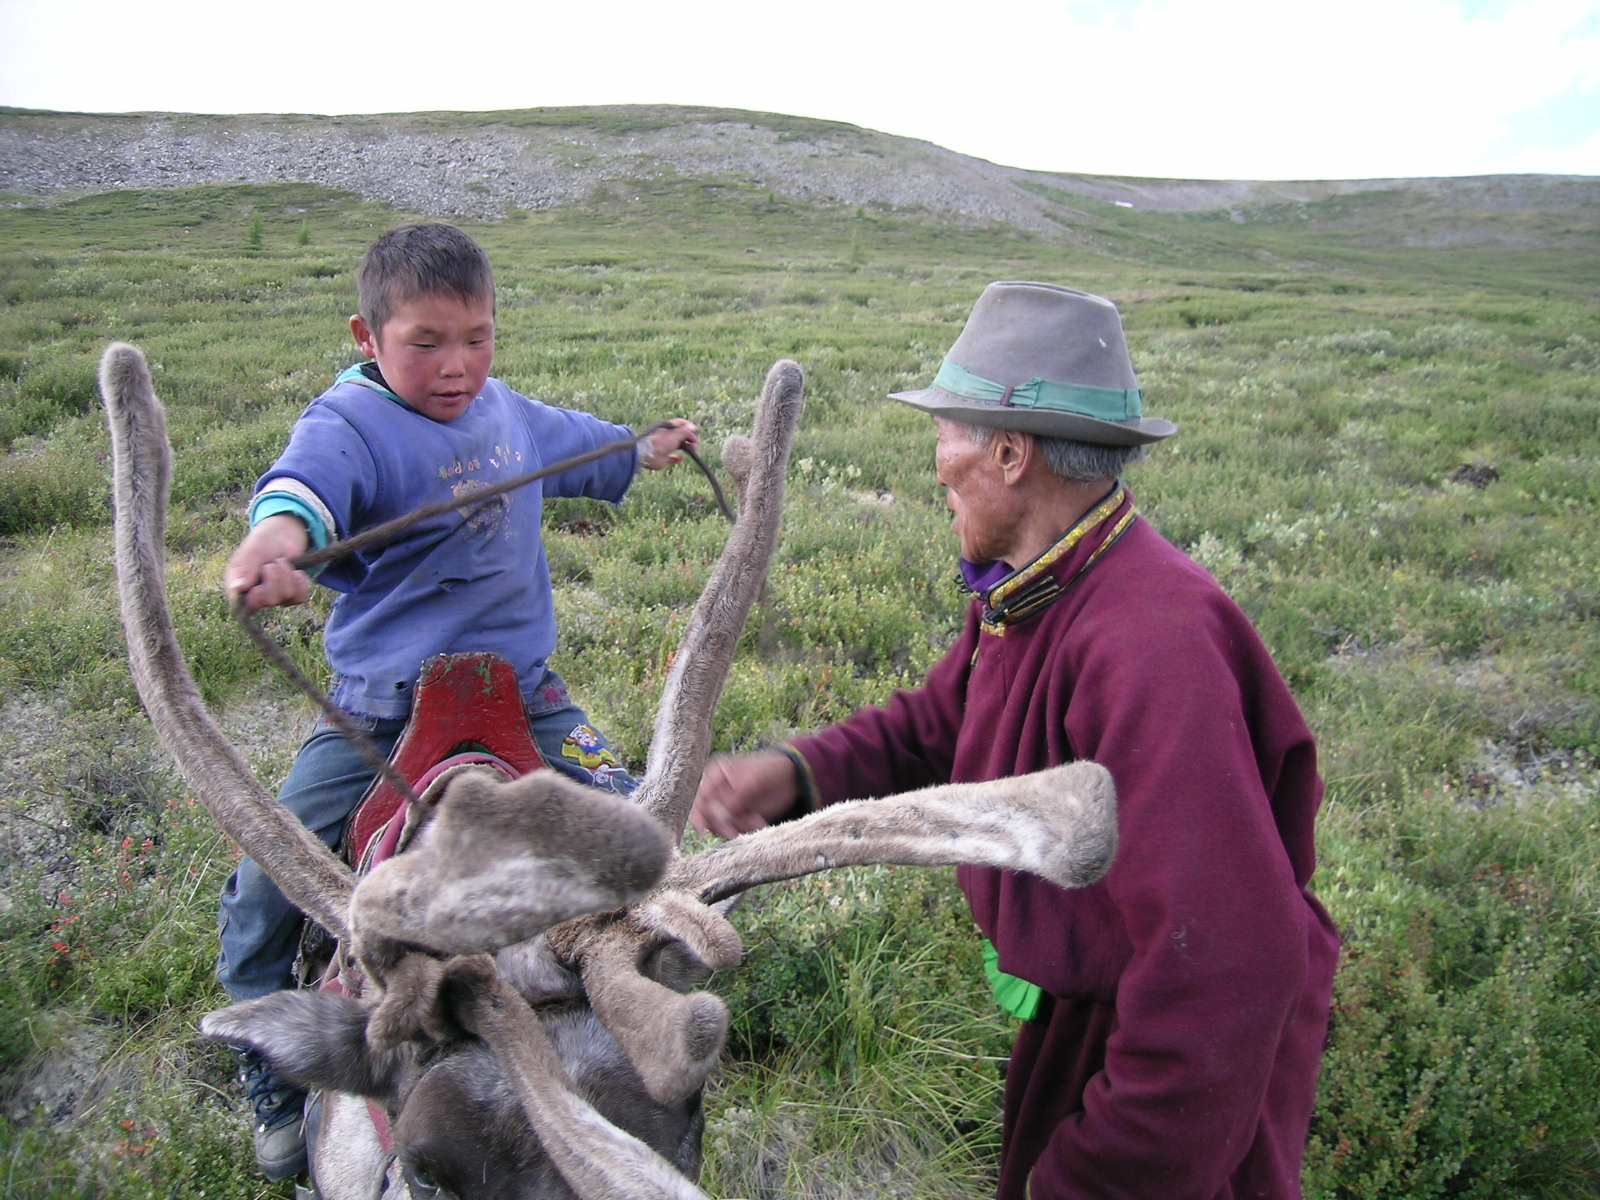 61-year-old Sanjim with his 12-year-old grandson, Mukhertinn. Of Sanjim's 13 children, only 3 have elected to remain nomadic reindeer herders.